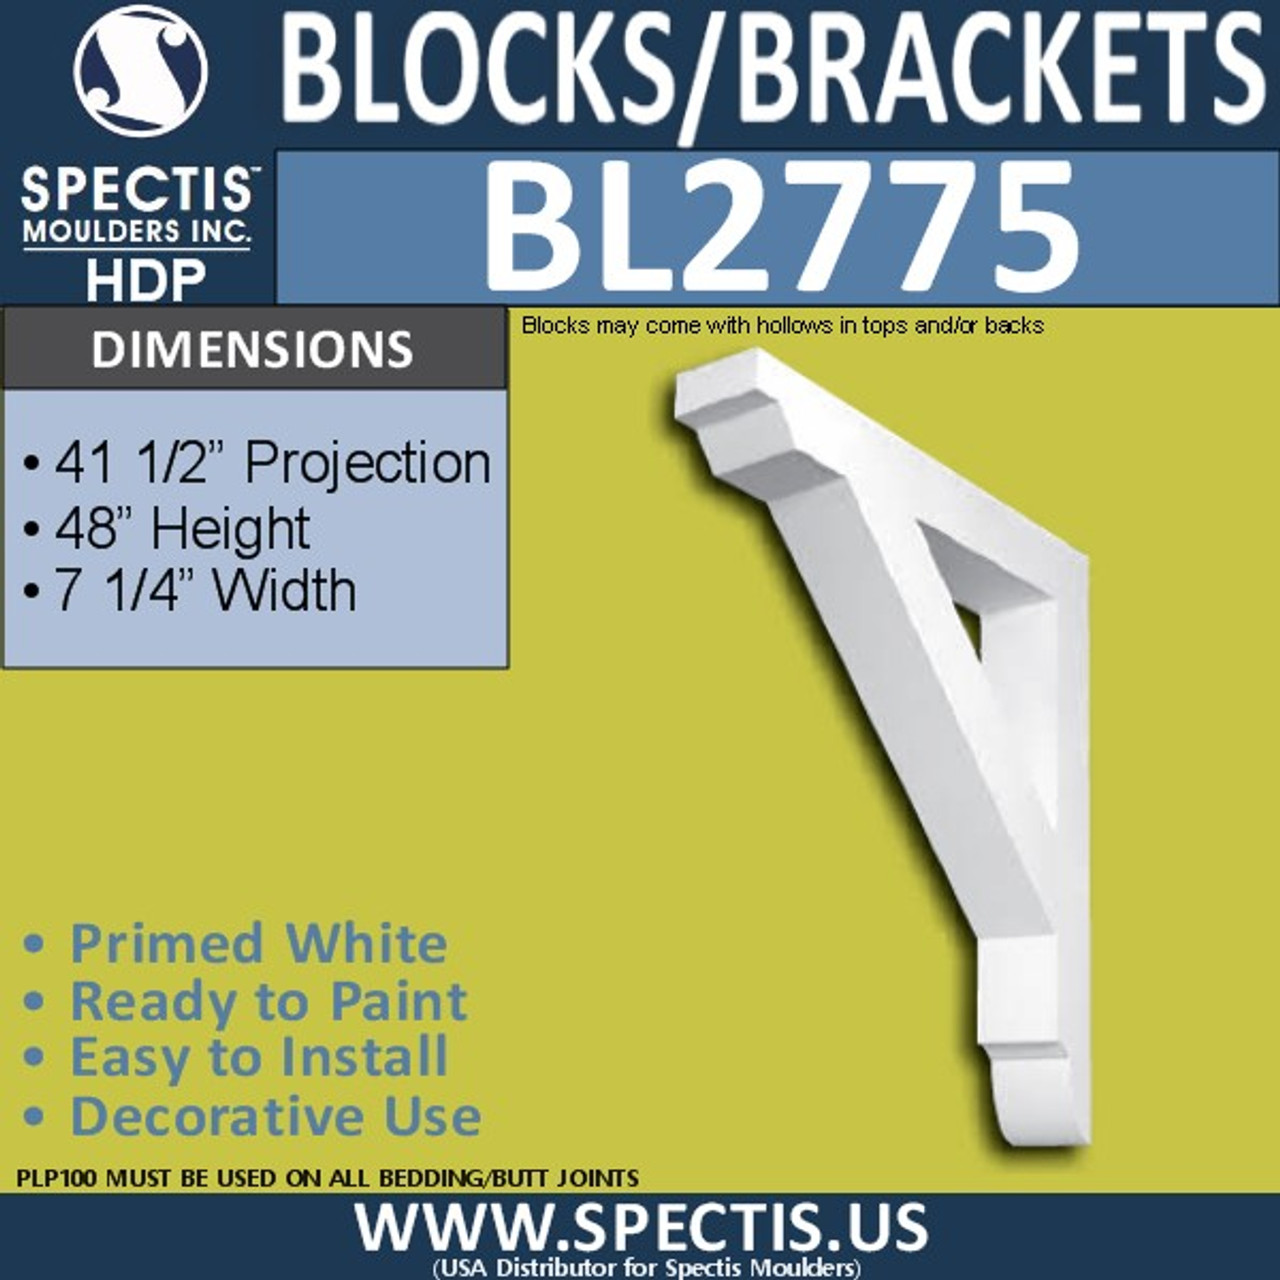 "BL2775 Eave Block or Bracket 7.5""W x 48""H x 41.5"" P"